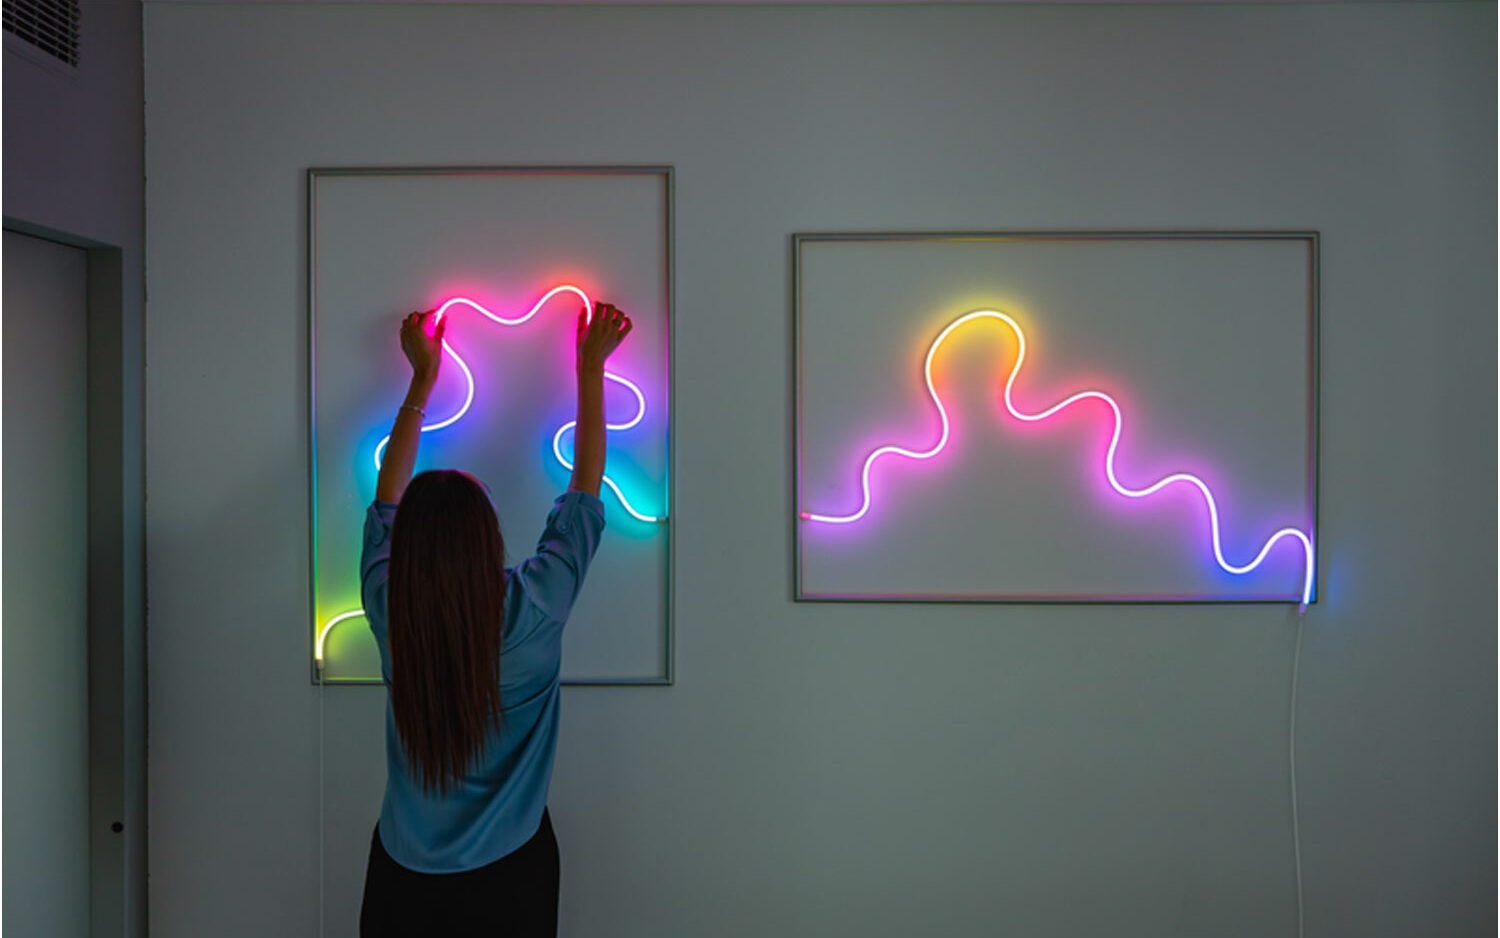 Light up your life with shapeable neon LED tube lighting that syncs to your music